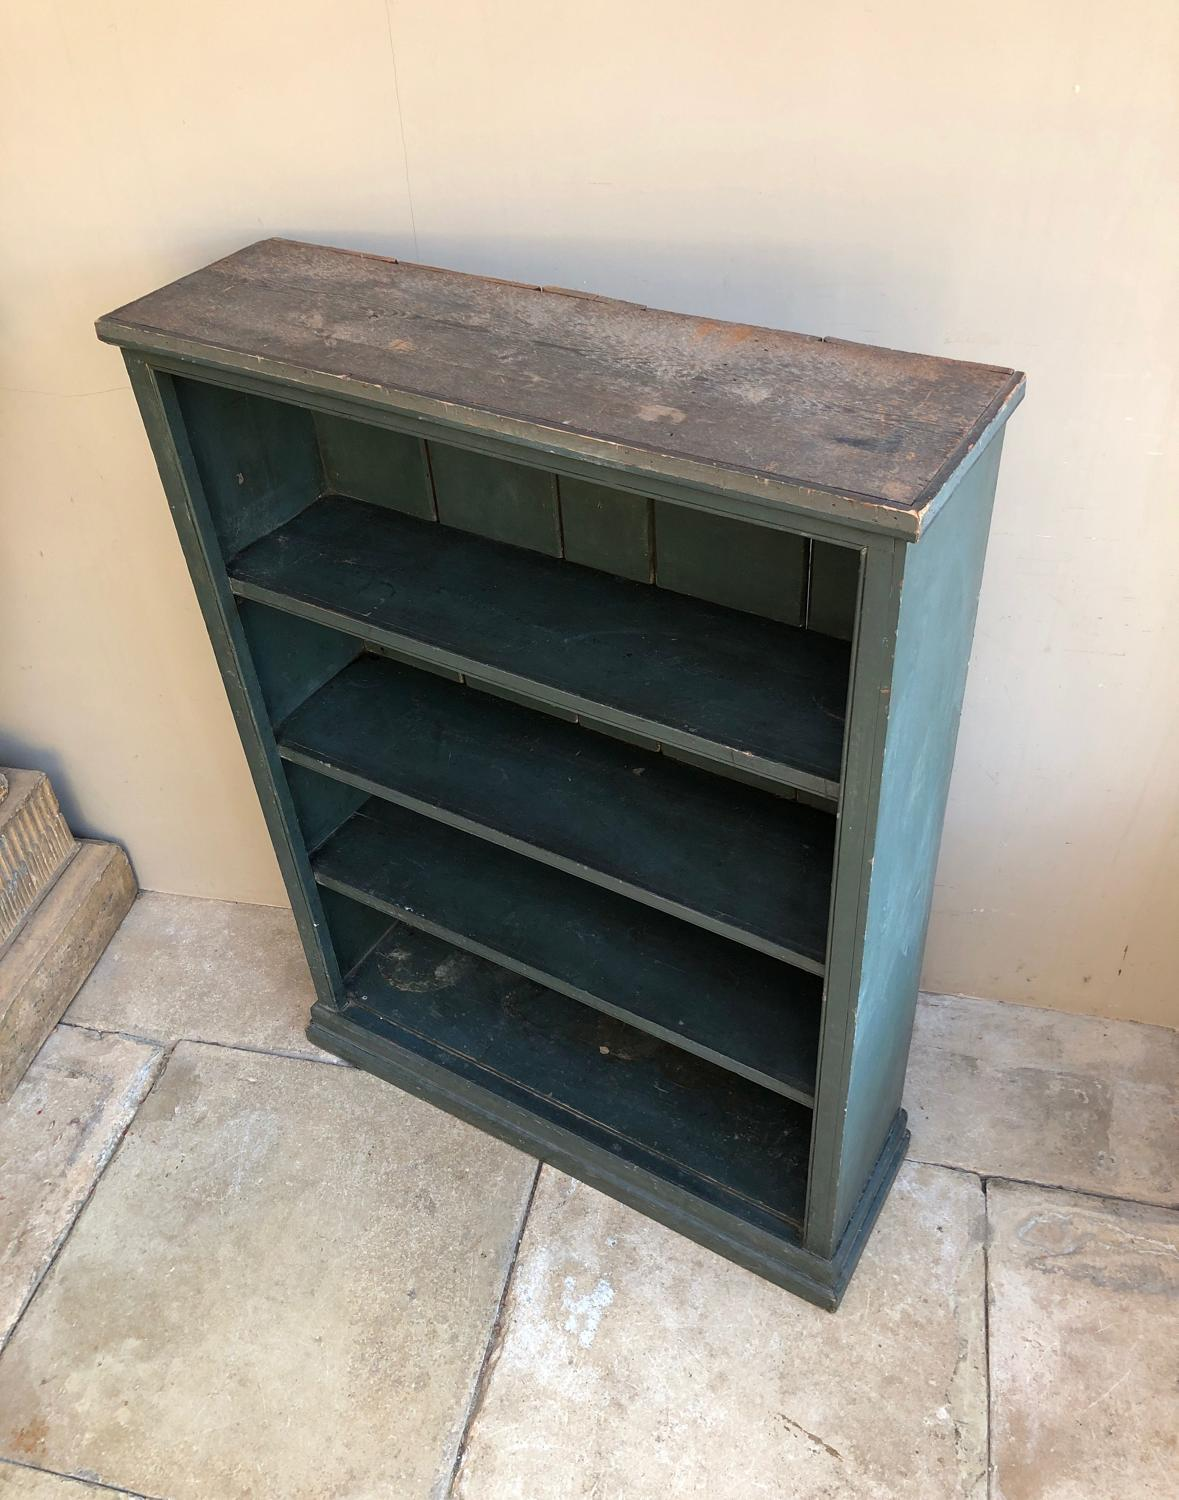 Early 20th Century Pine Shelves in Early Green Paint